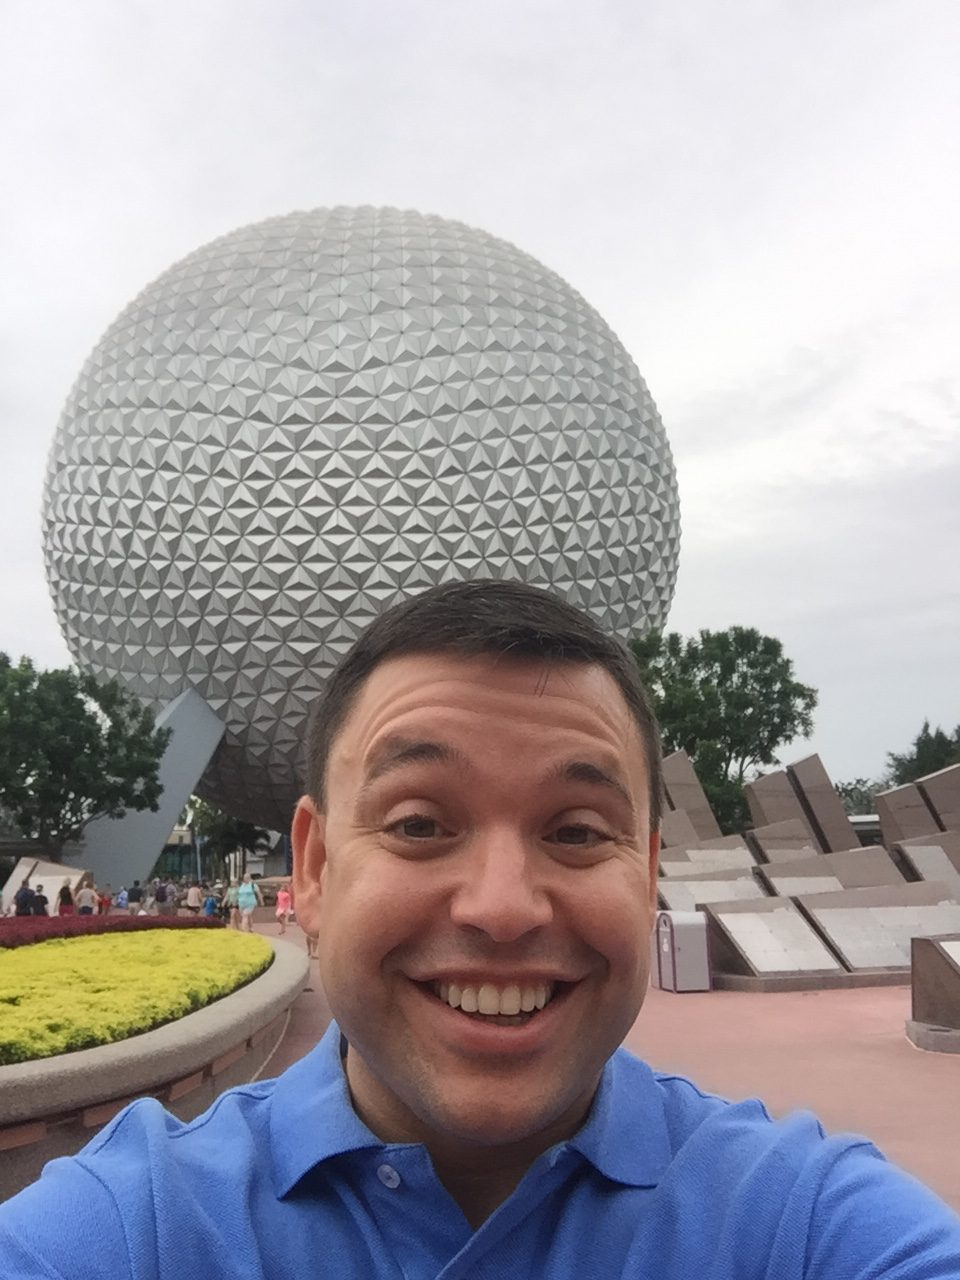 Tony Lopez in front of Epcot